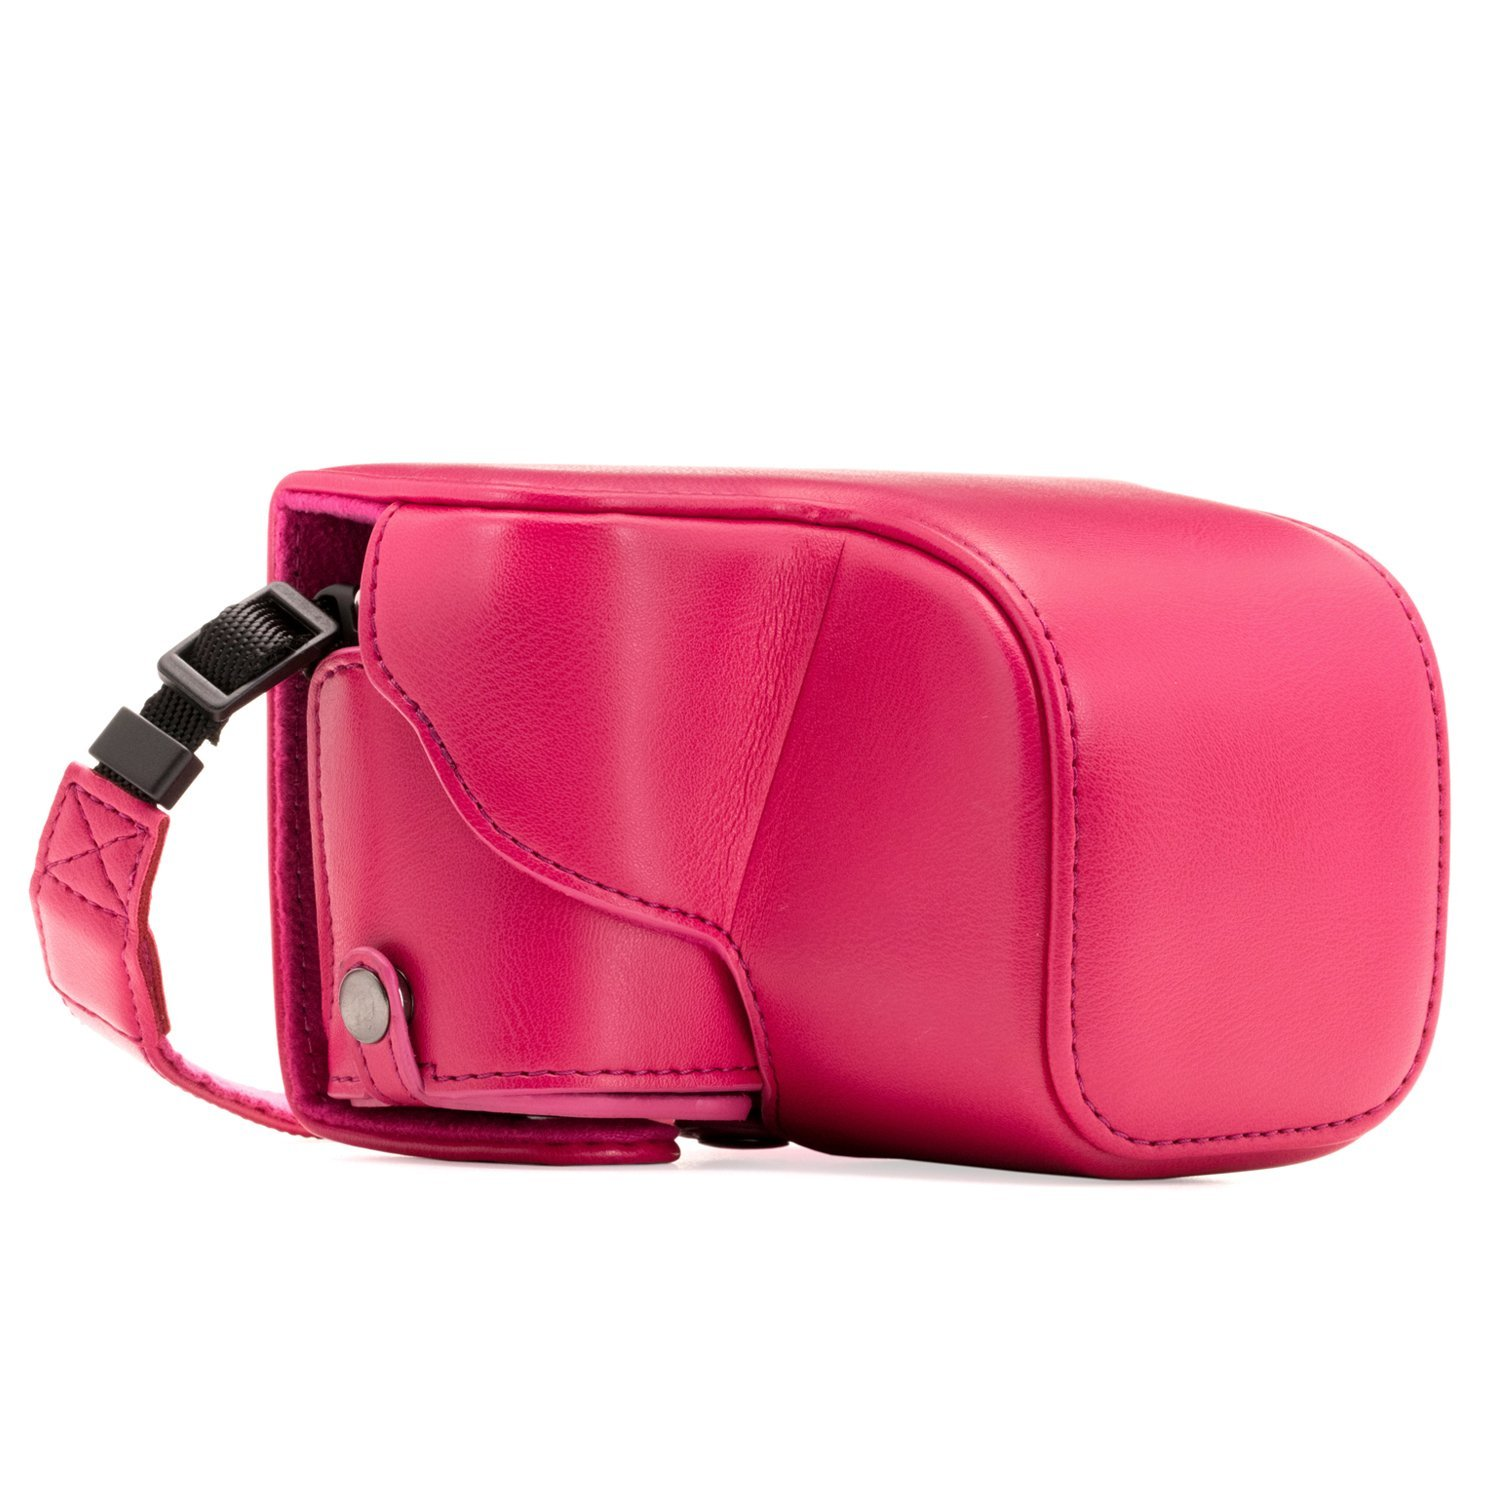 MegaGear Sony Alpha A6300, A6000 (16 50 mm) Ever Ready Leather Camera Case with Strap Hot Pink MG1145